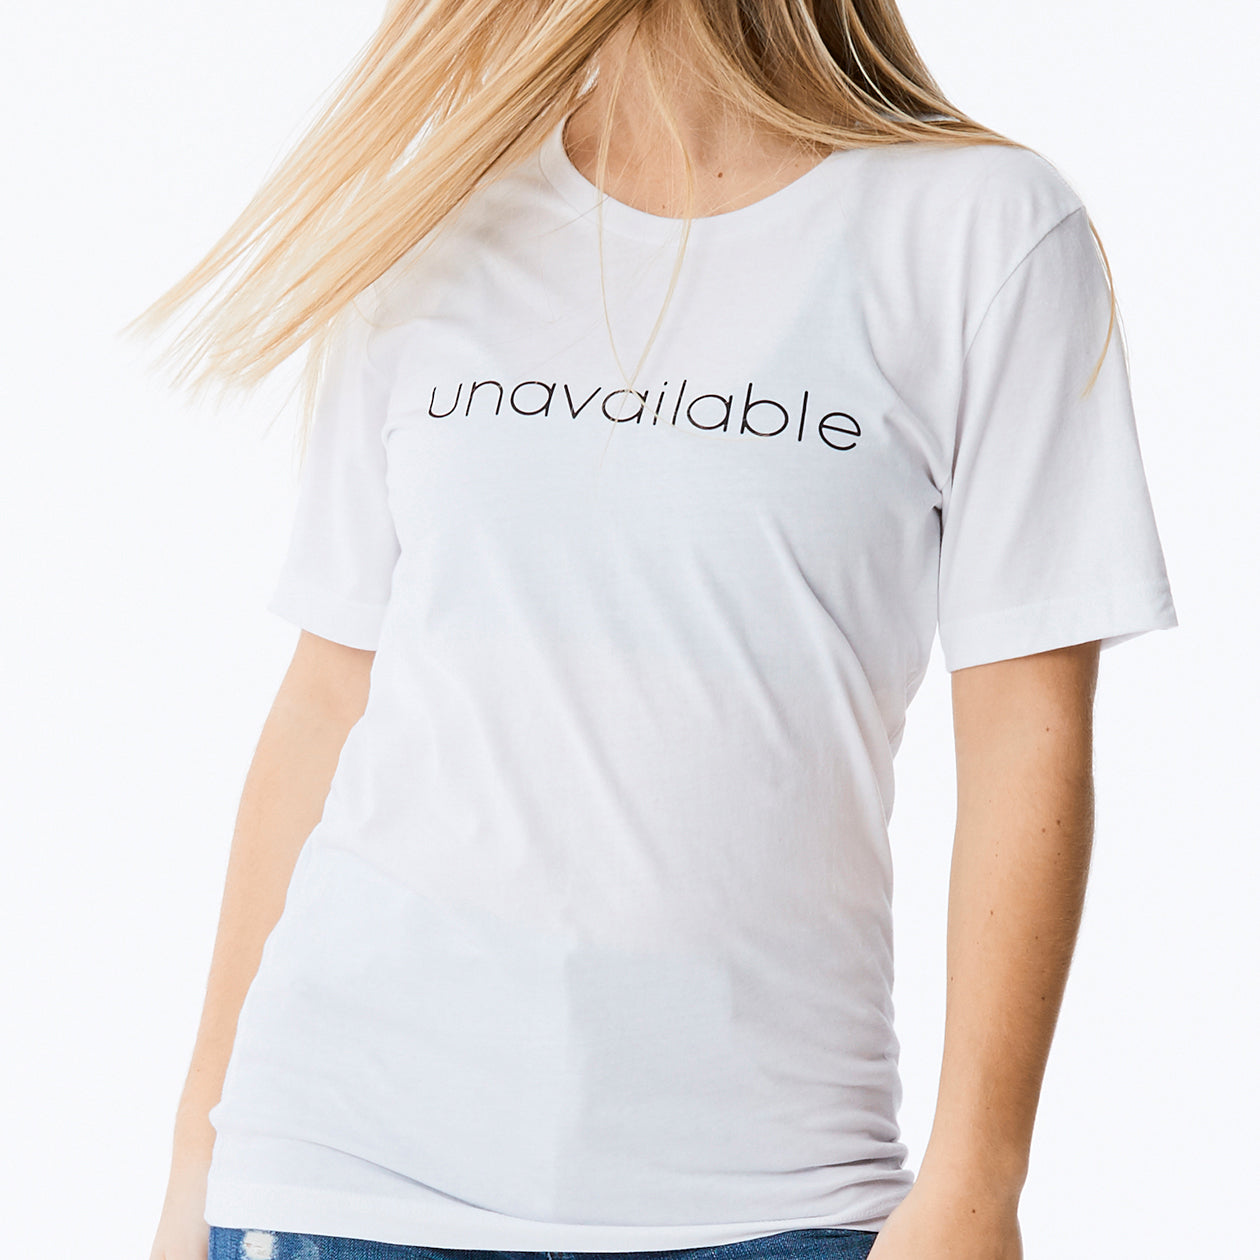 c'est beau1872 – Unavailable Logo Tee in White